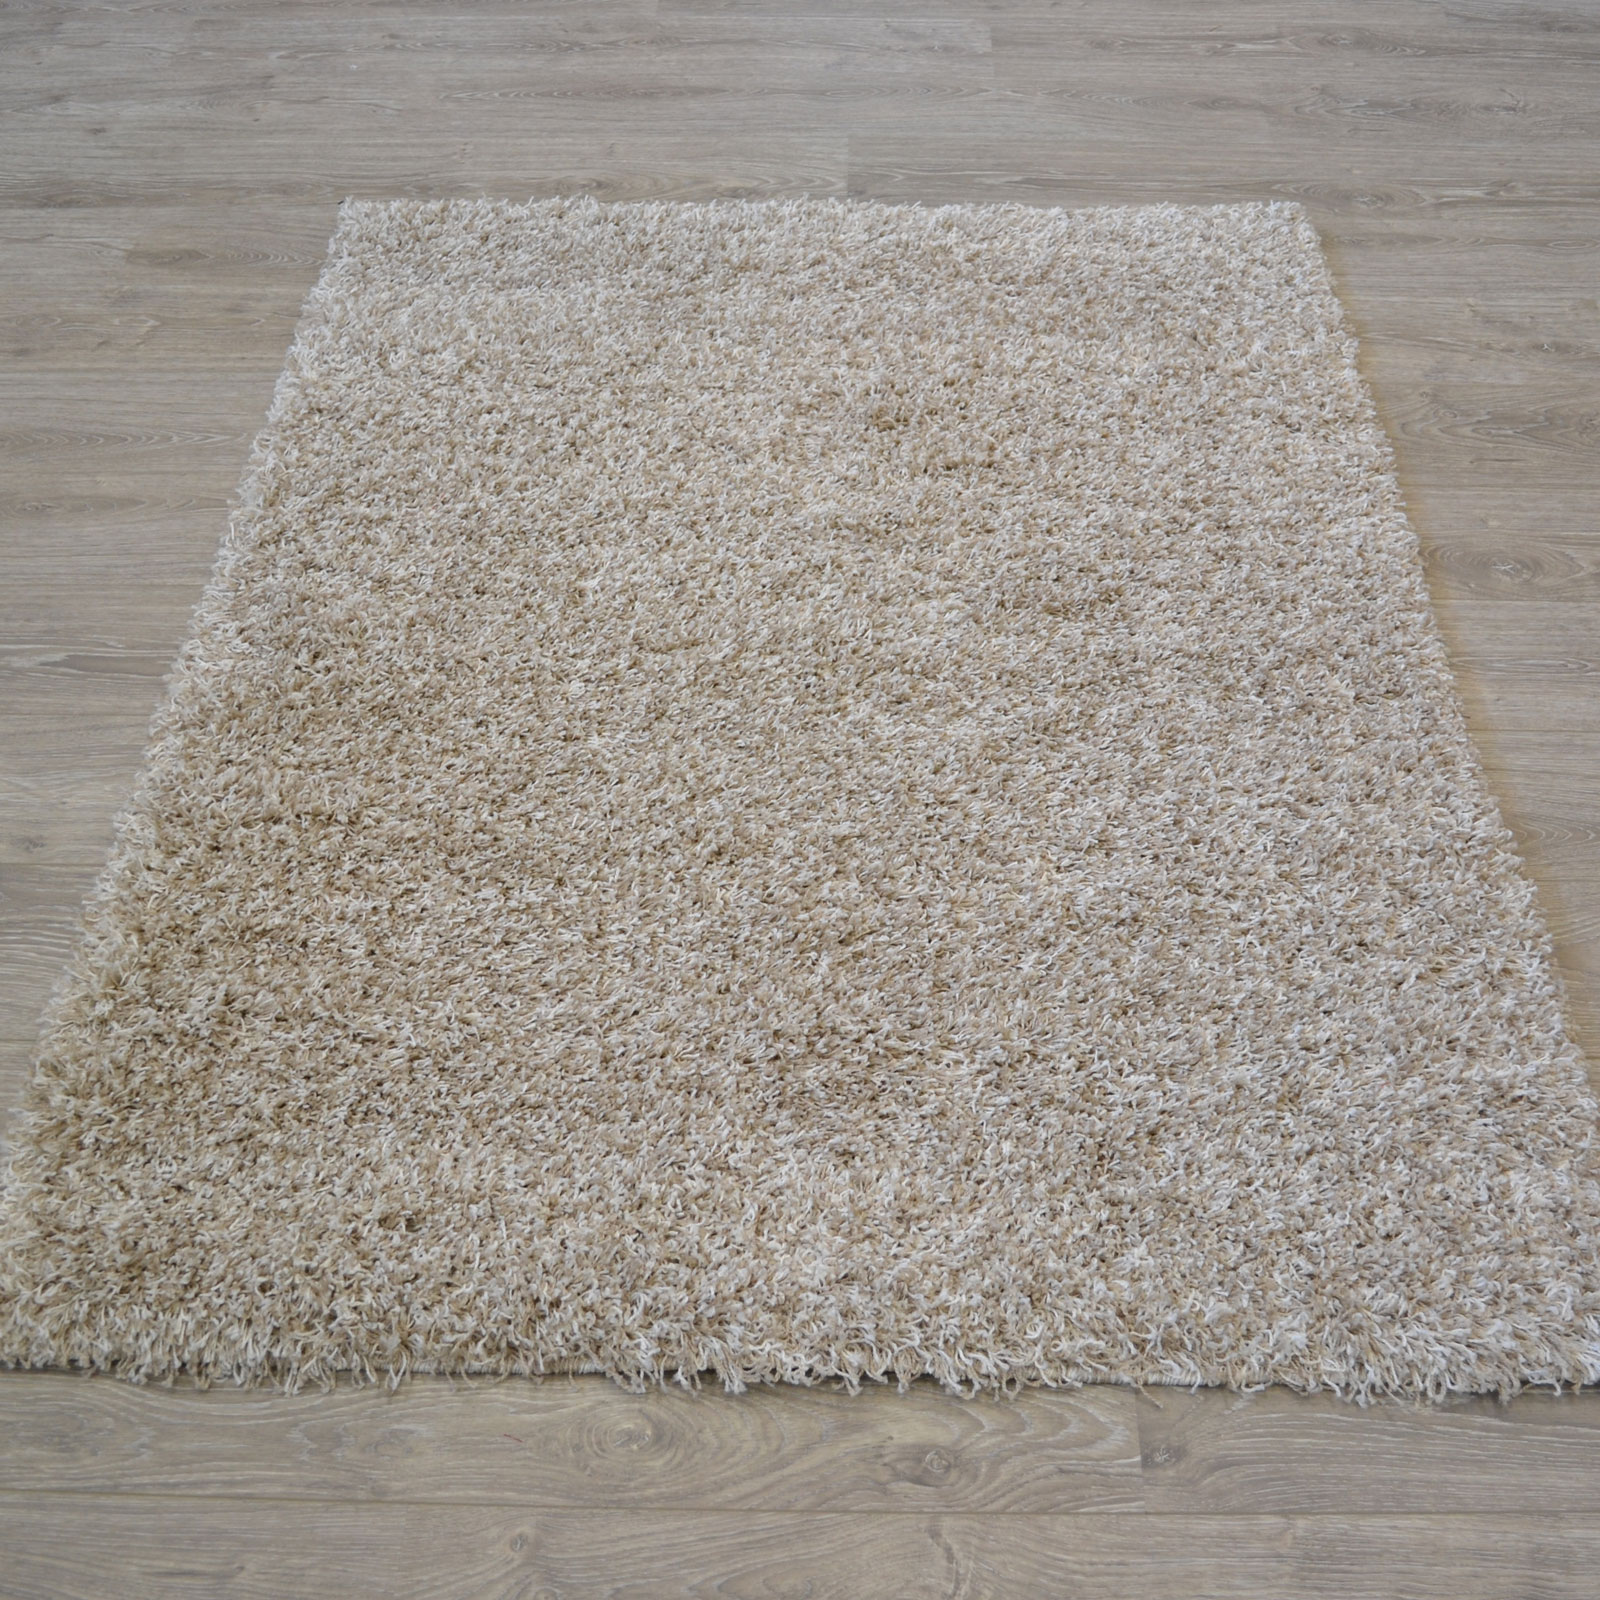 Cariboo Shaggy Rugs in Natural Mix